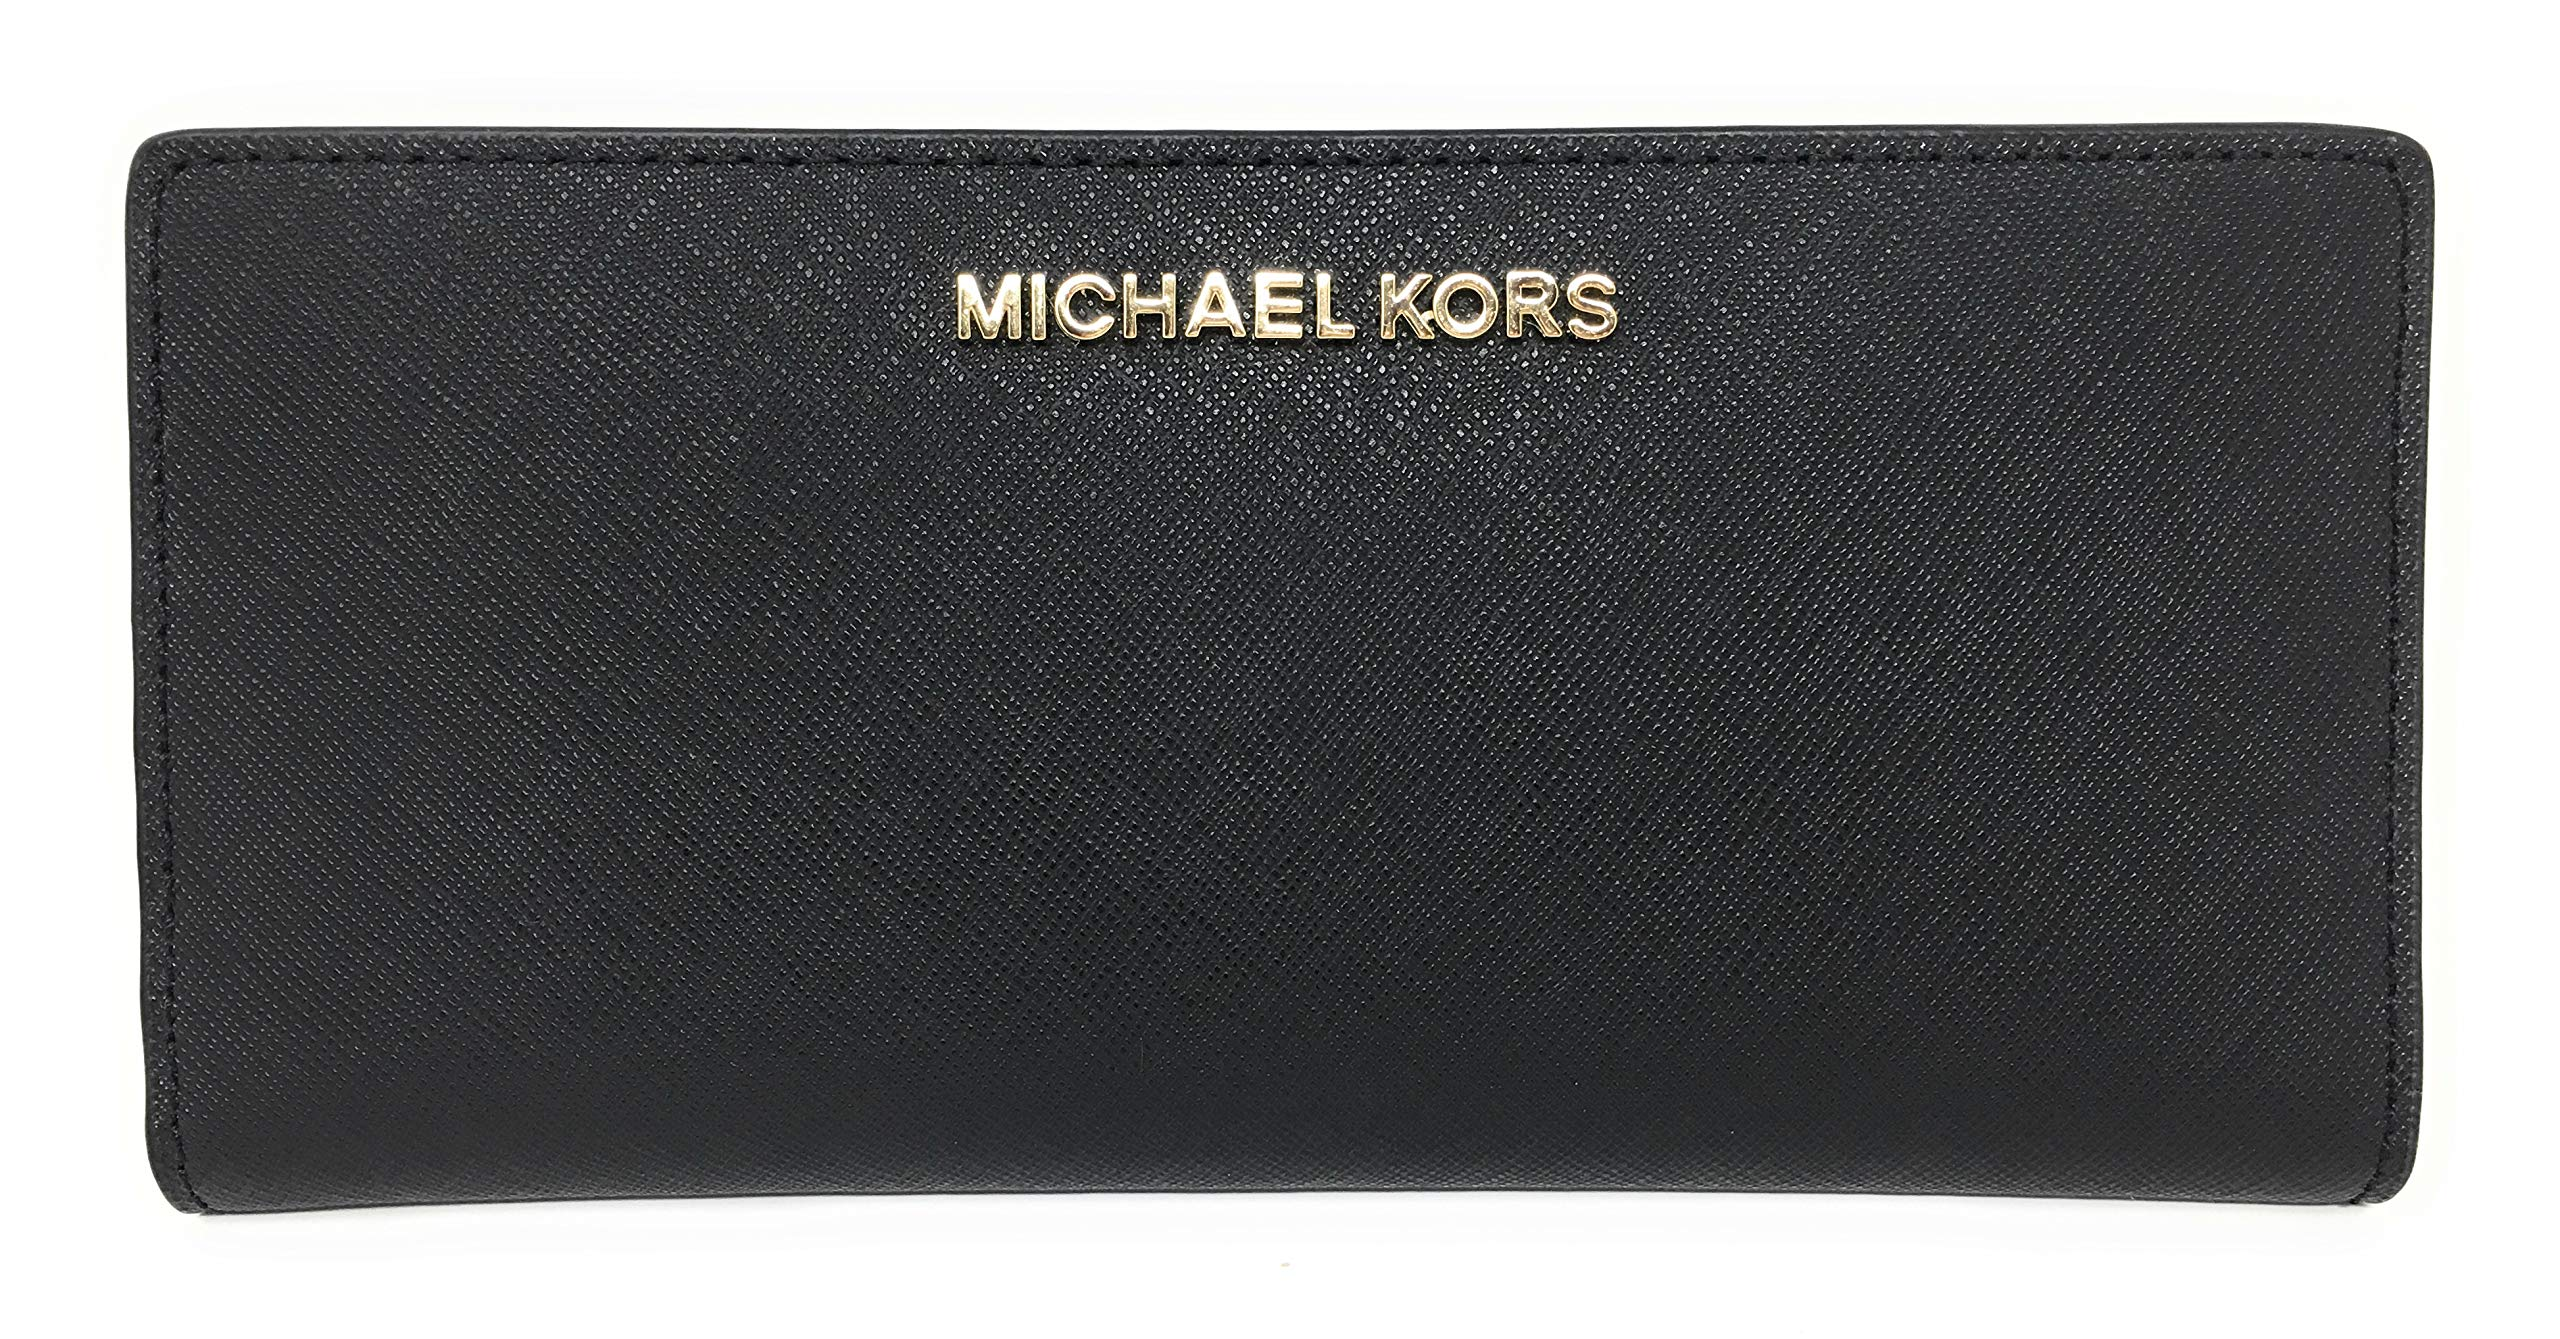 Michael Kors Jet Set Travel Leather Medium Large Card Case Carryall Wallet with Removable ID Card Holder (Black with Gold Hardware)